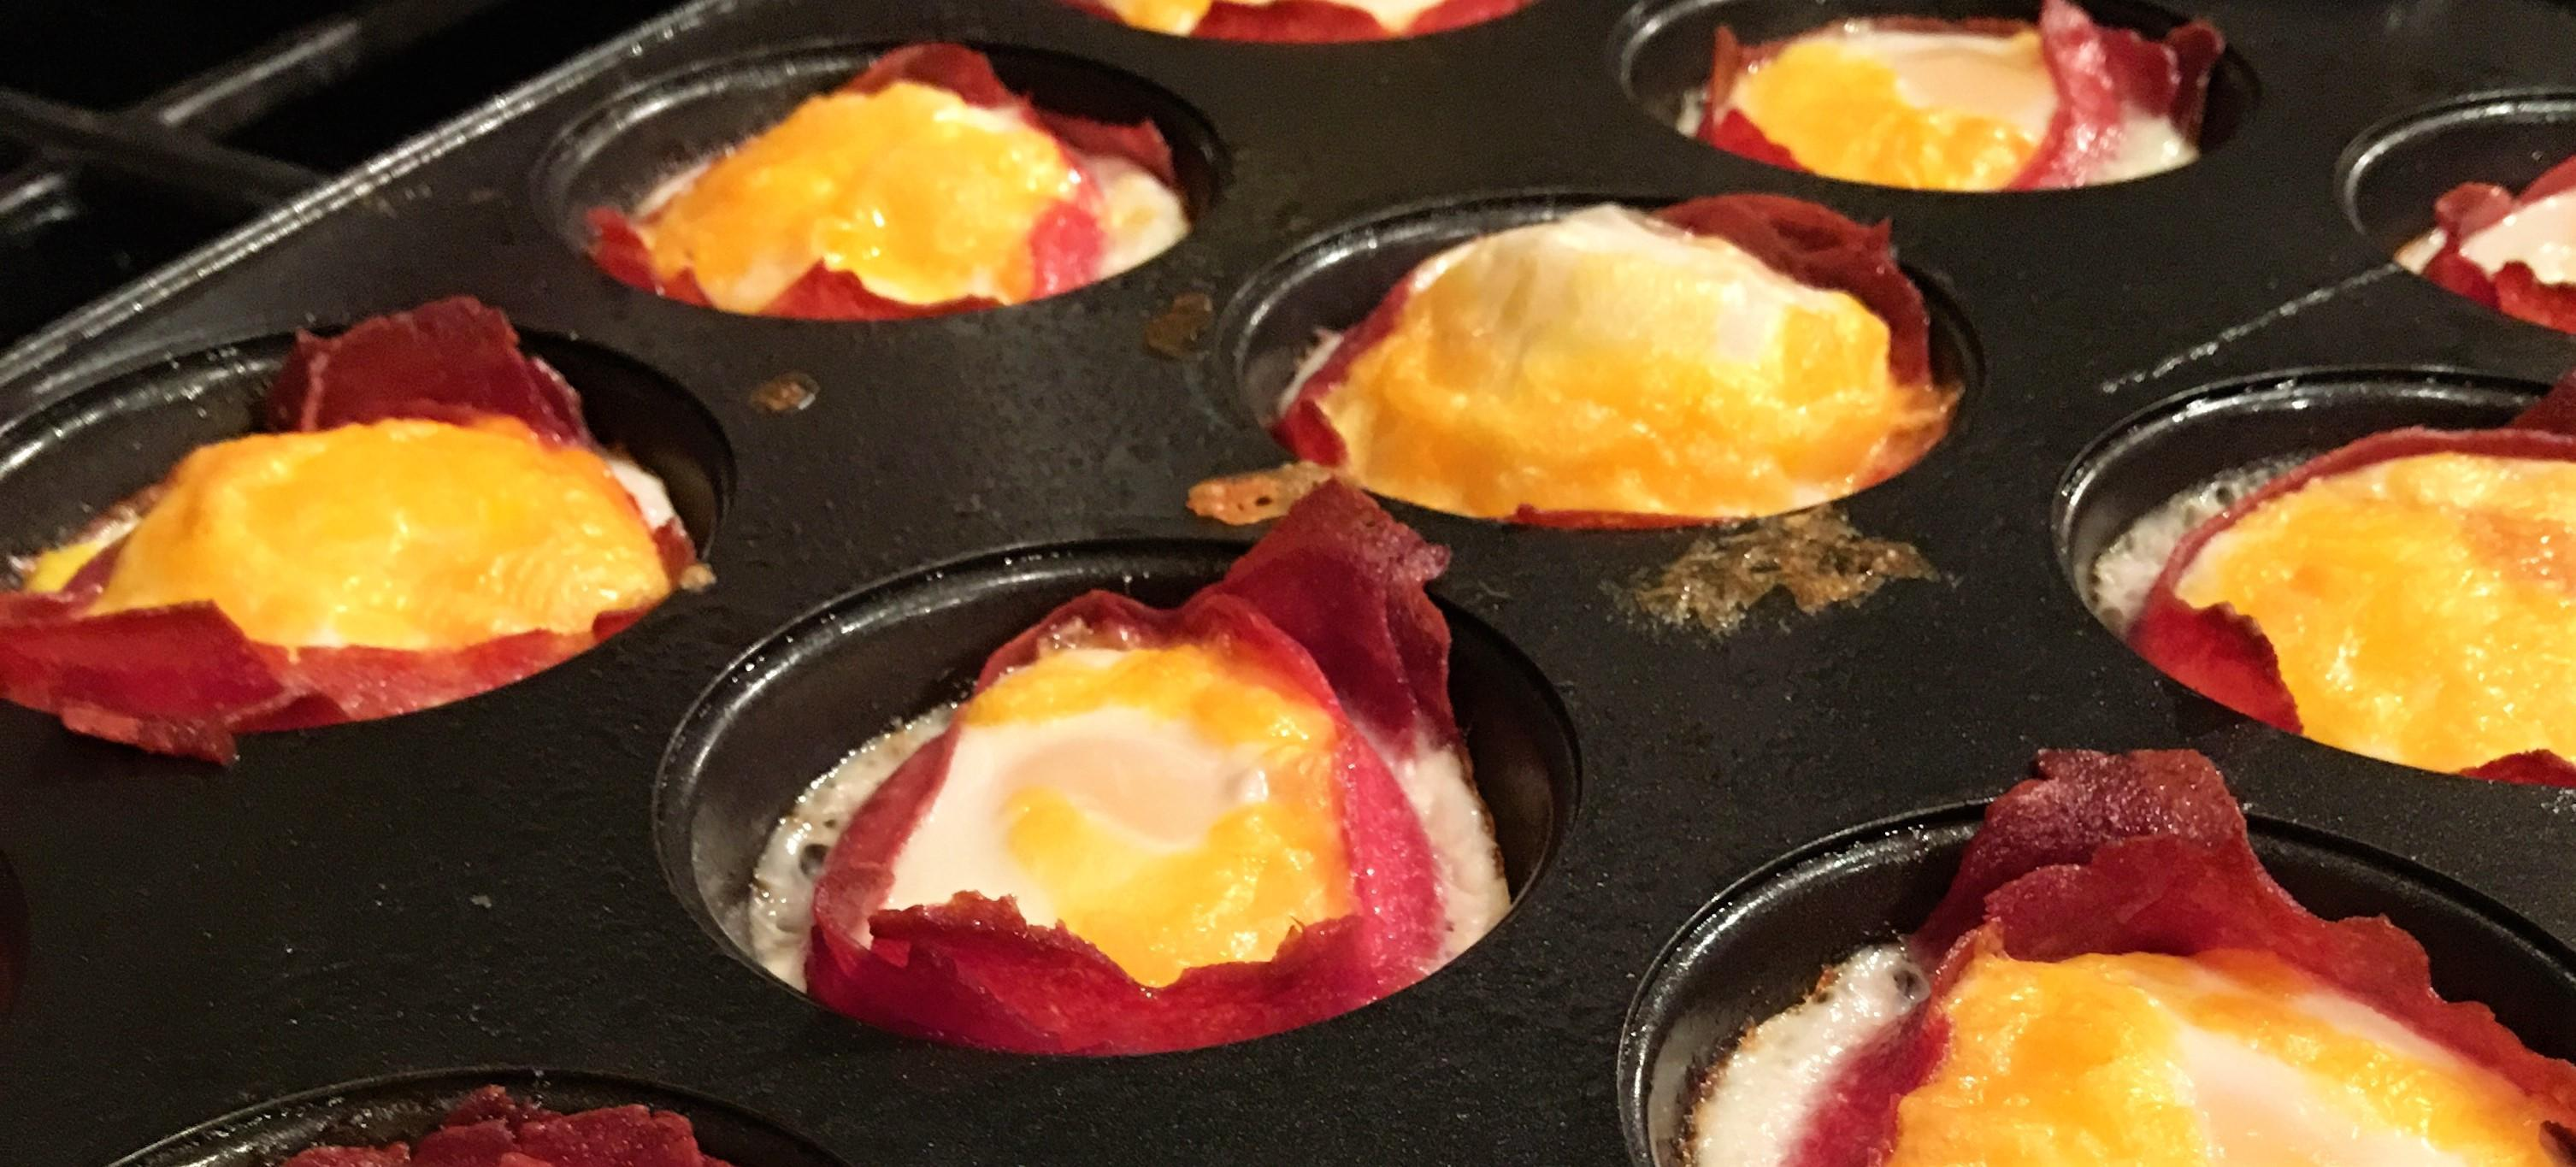 Recipes 101: Turkey bacon Egg Cups